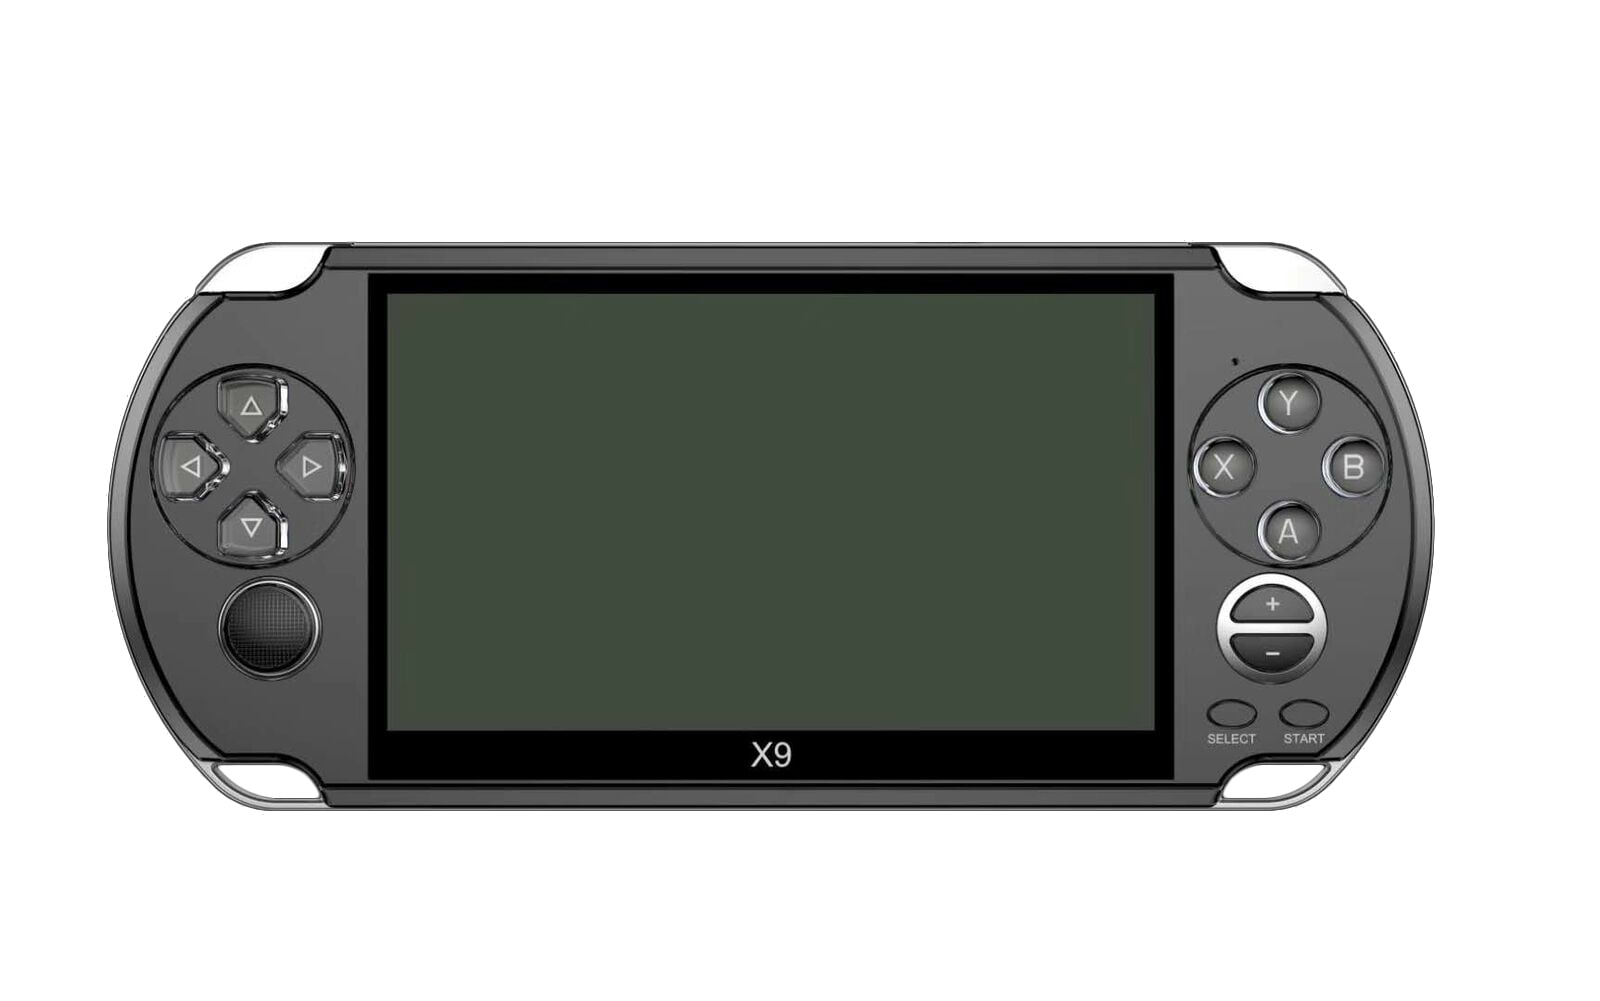 X9 5'' Handheld Video Game Console Retro Player Portable 32/64 Bit Games+ Cable PC White - 9